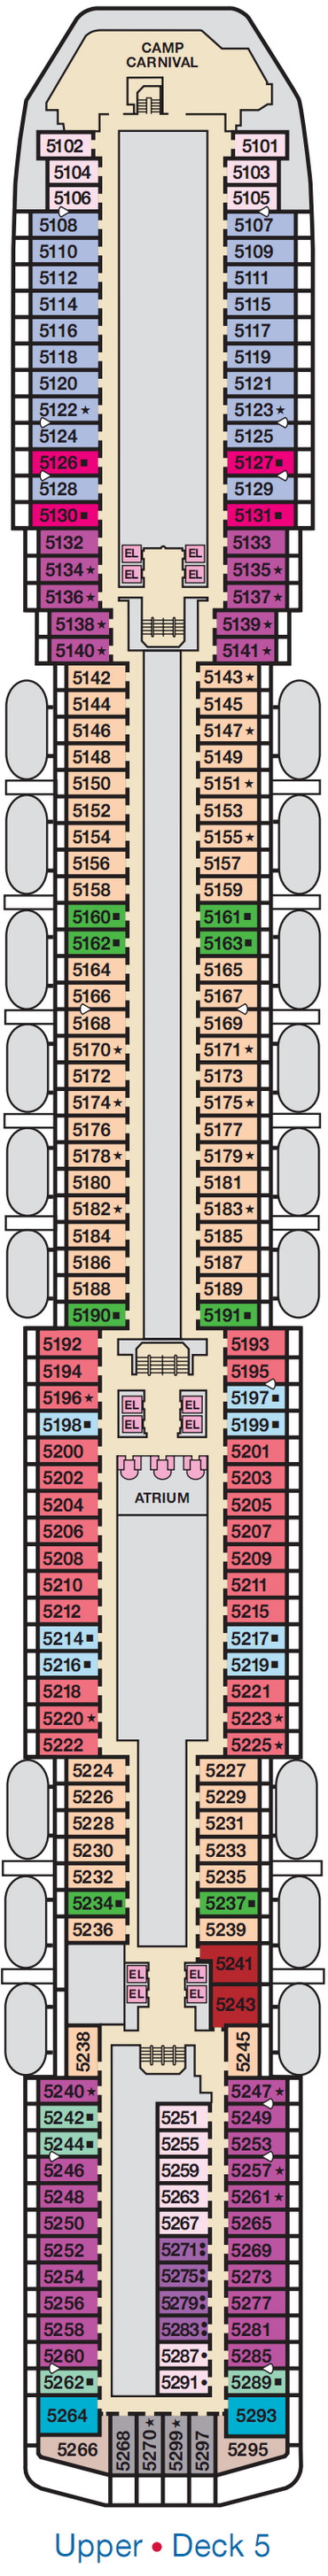 Carnival Spirit Upper Deck 5 layout